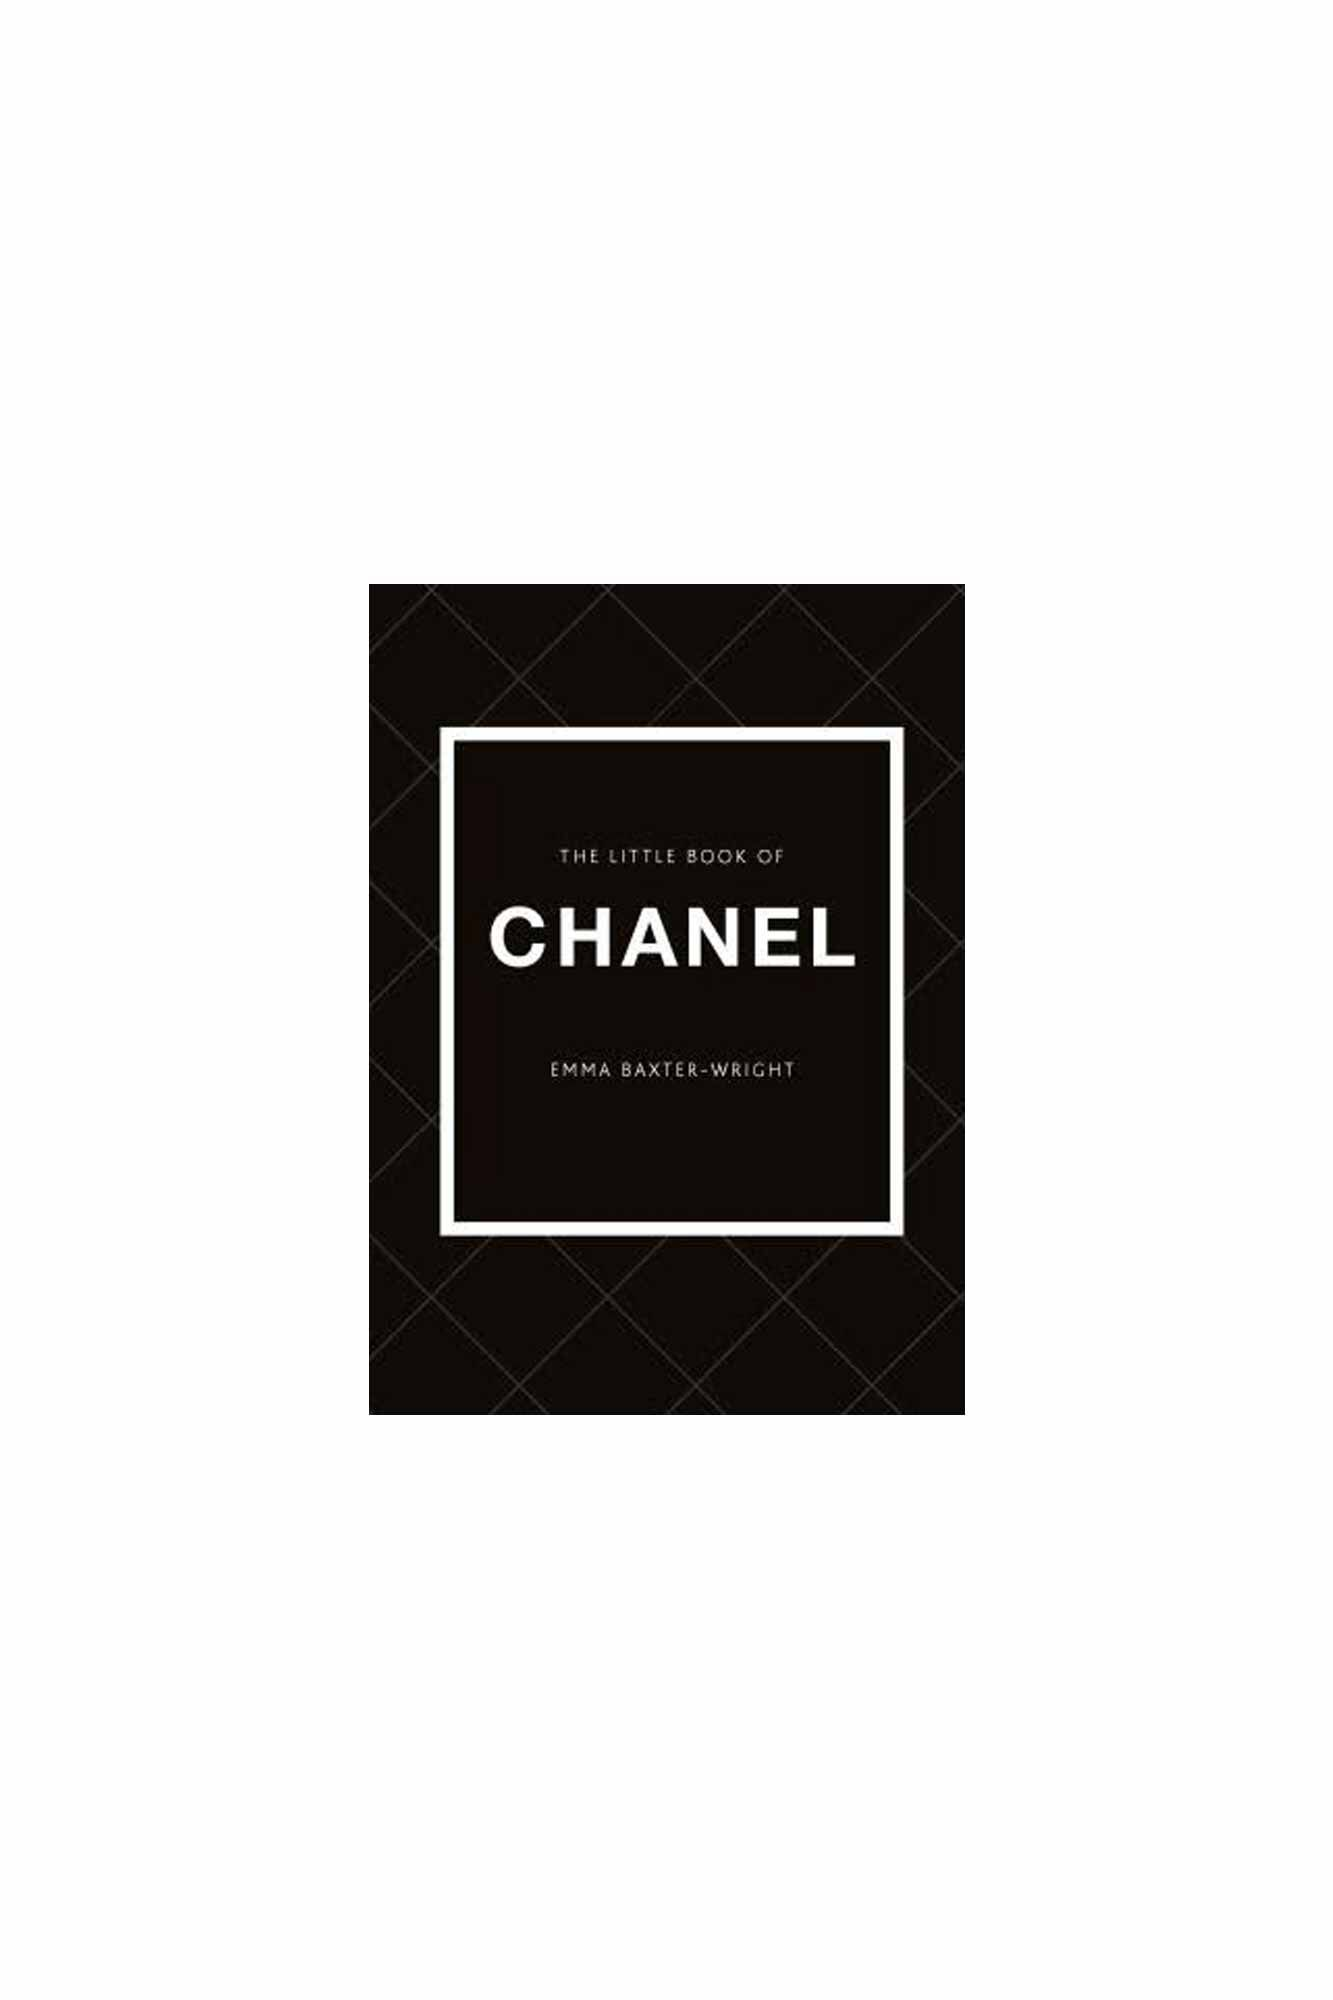 Little book of chanel CB1000